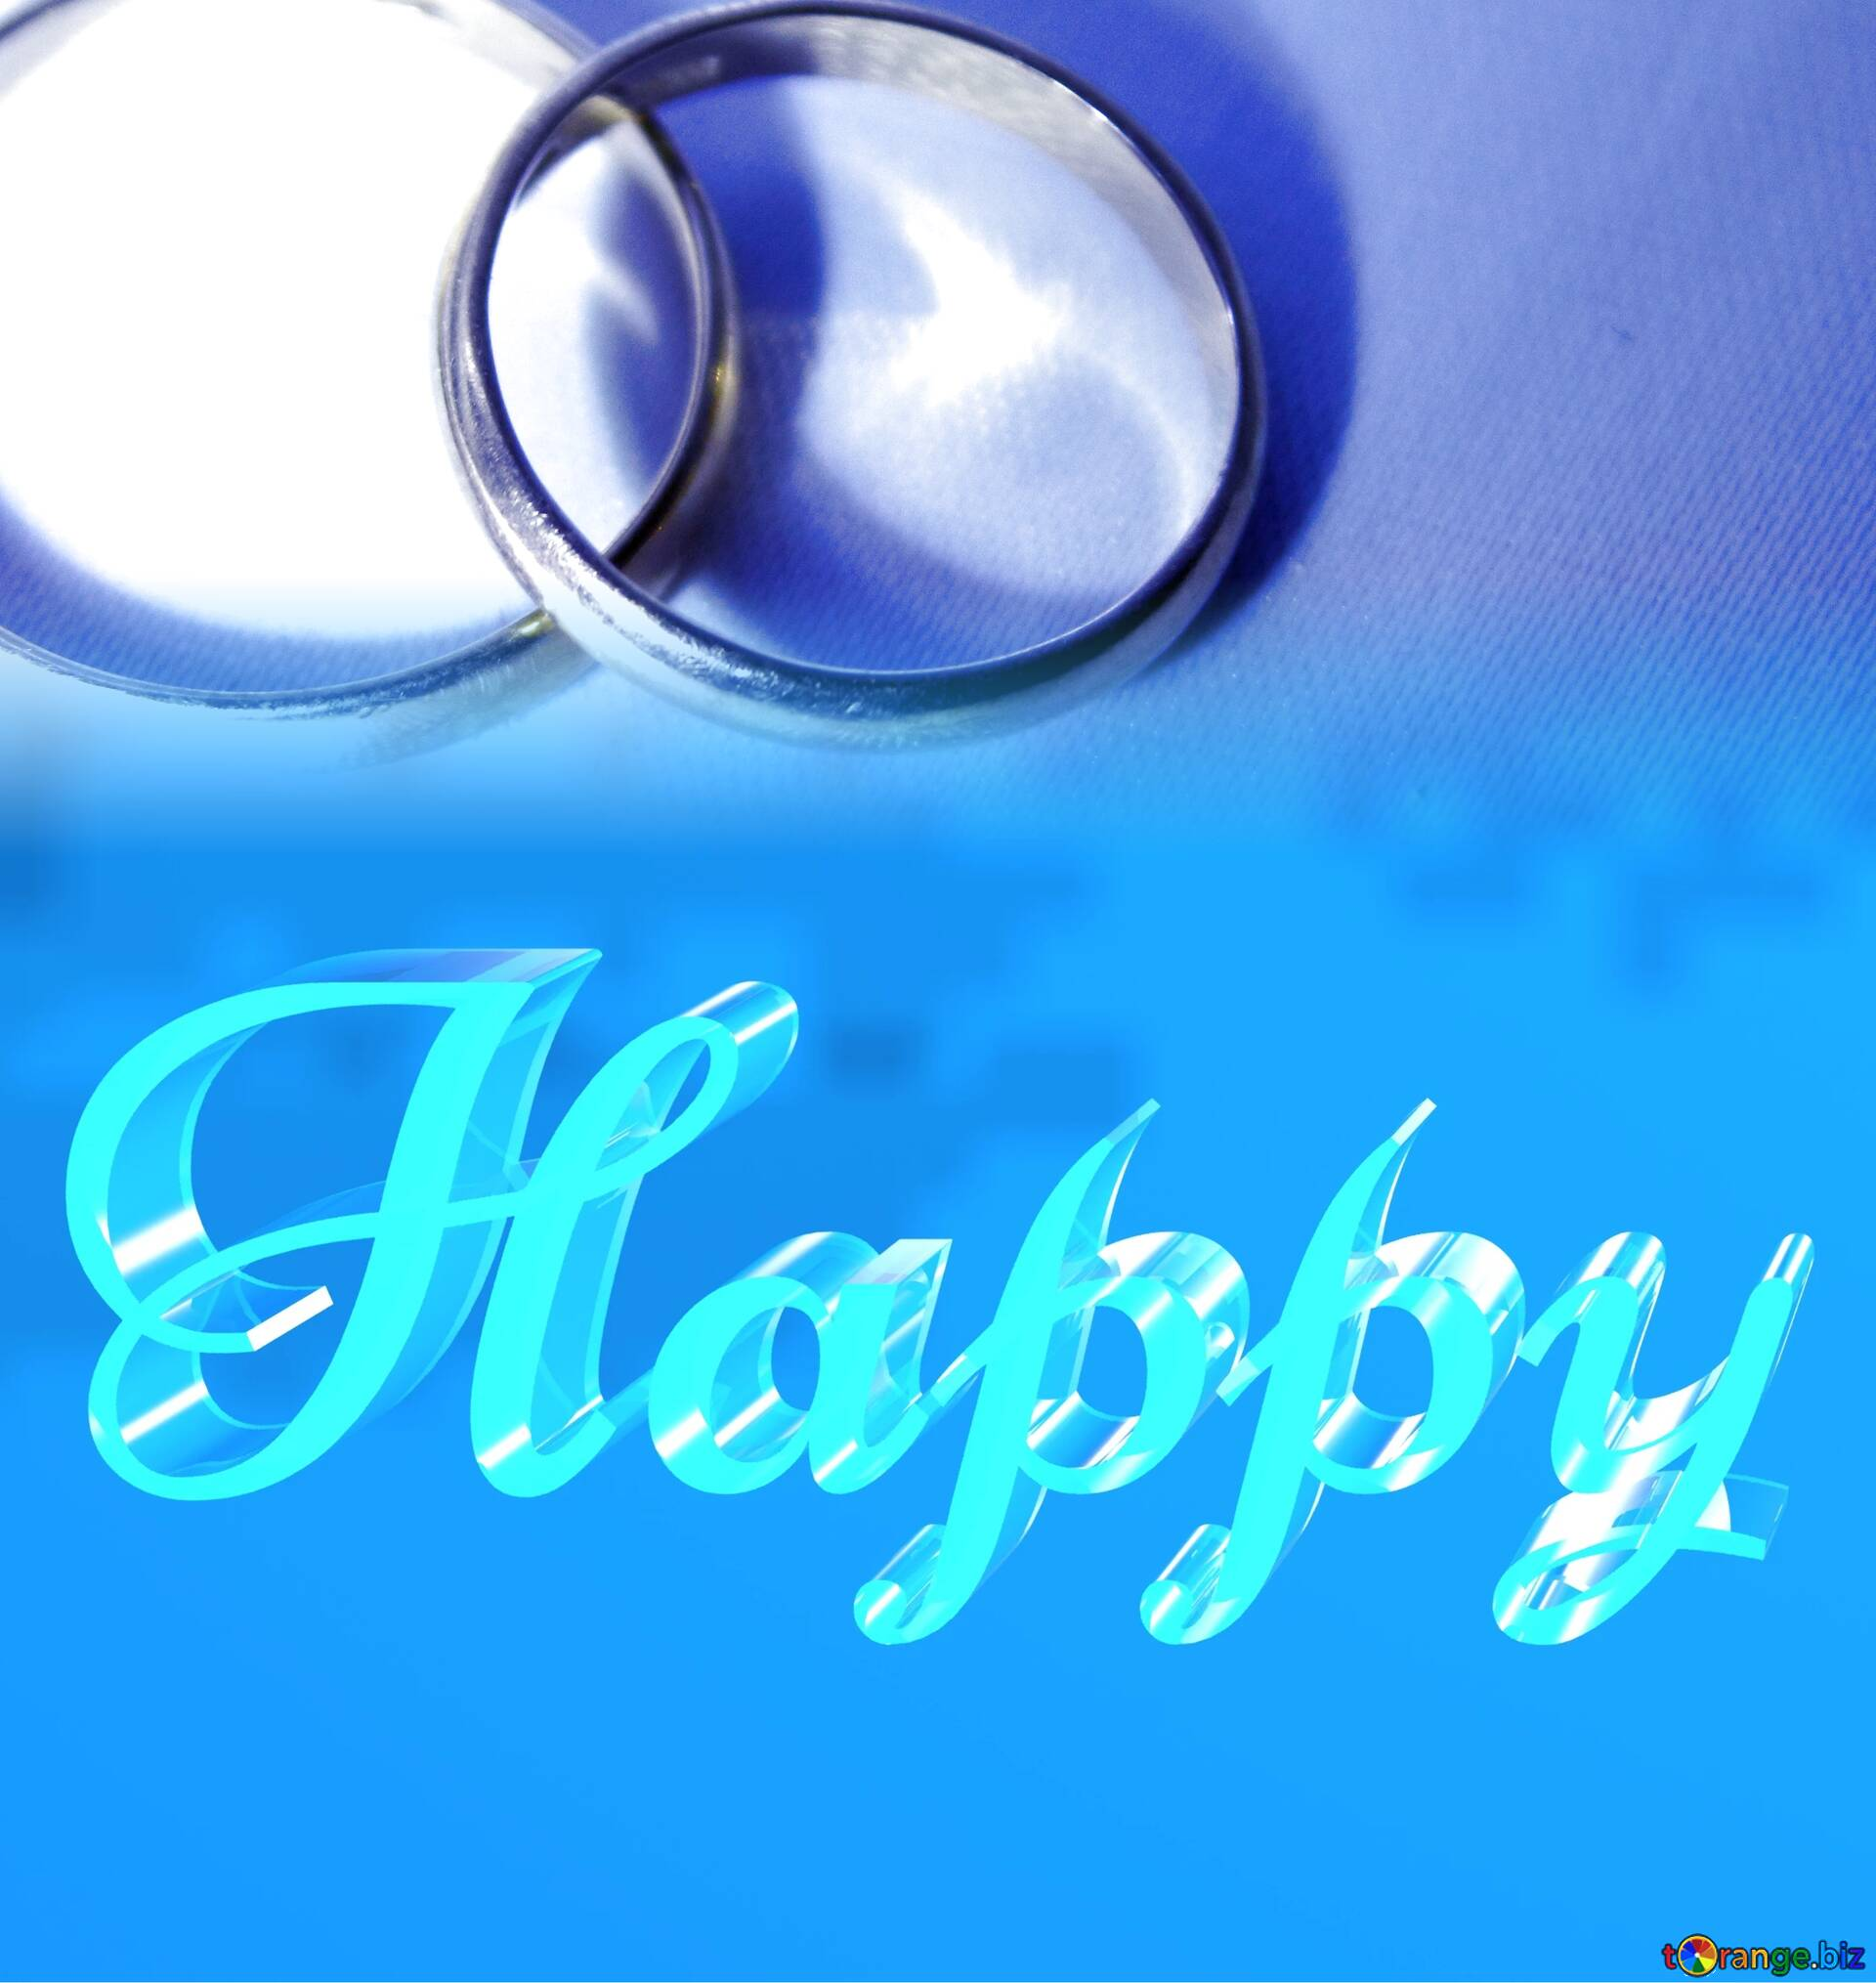 Download Free Picture Happy Glass Blue Background Wedding Invitation On Cc By License Free Image Stock Torange Biz Fx 183114